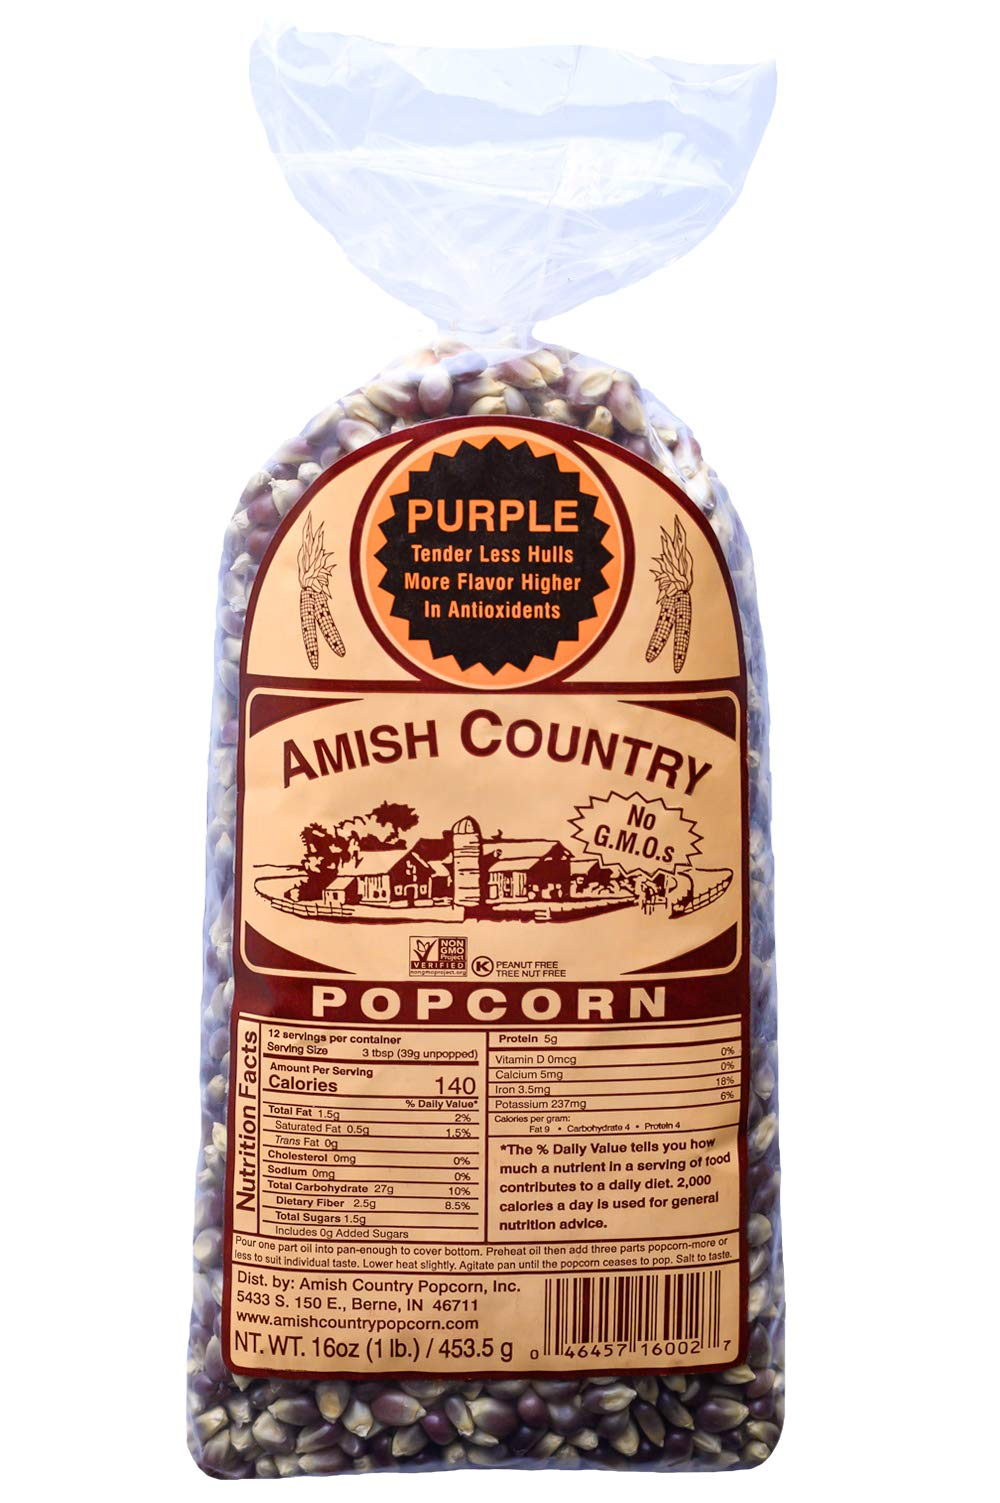 Amish Country Popcorn - Purple Kernels (1 Pound Bag) With Recipe Guide - Old Fashioned, Non GMO, and Gluten Free by Amish Country Popcorn